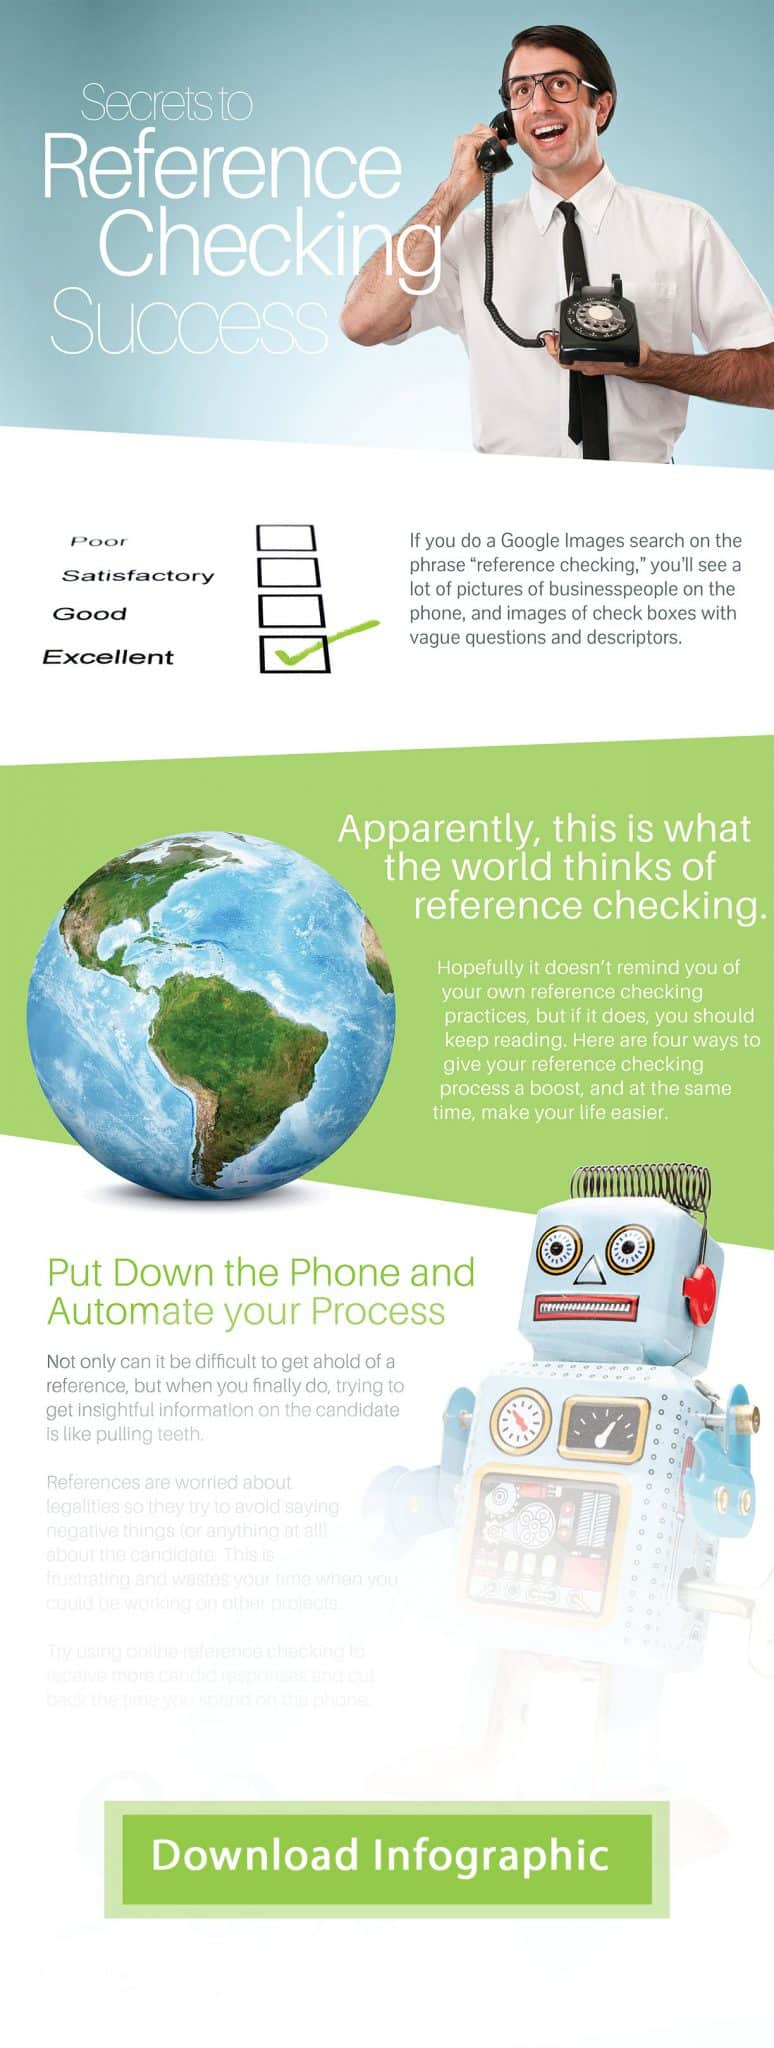 Secrets to Reference Checking